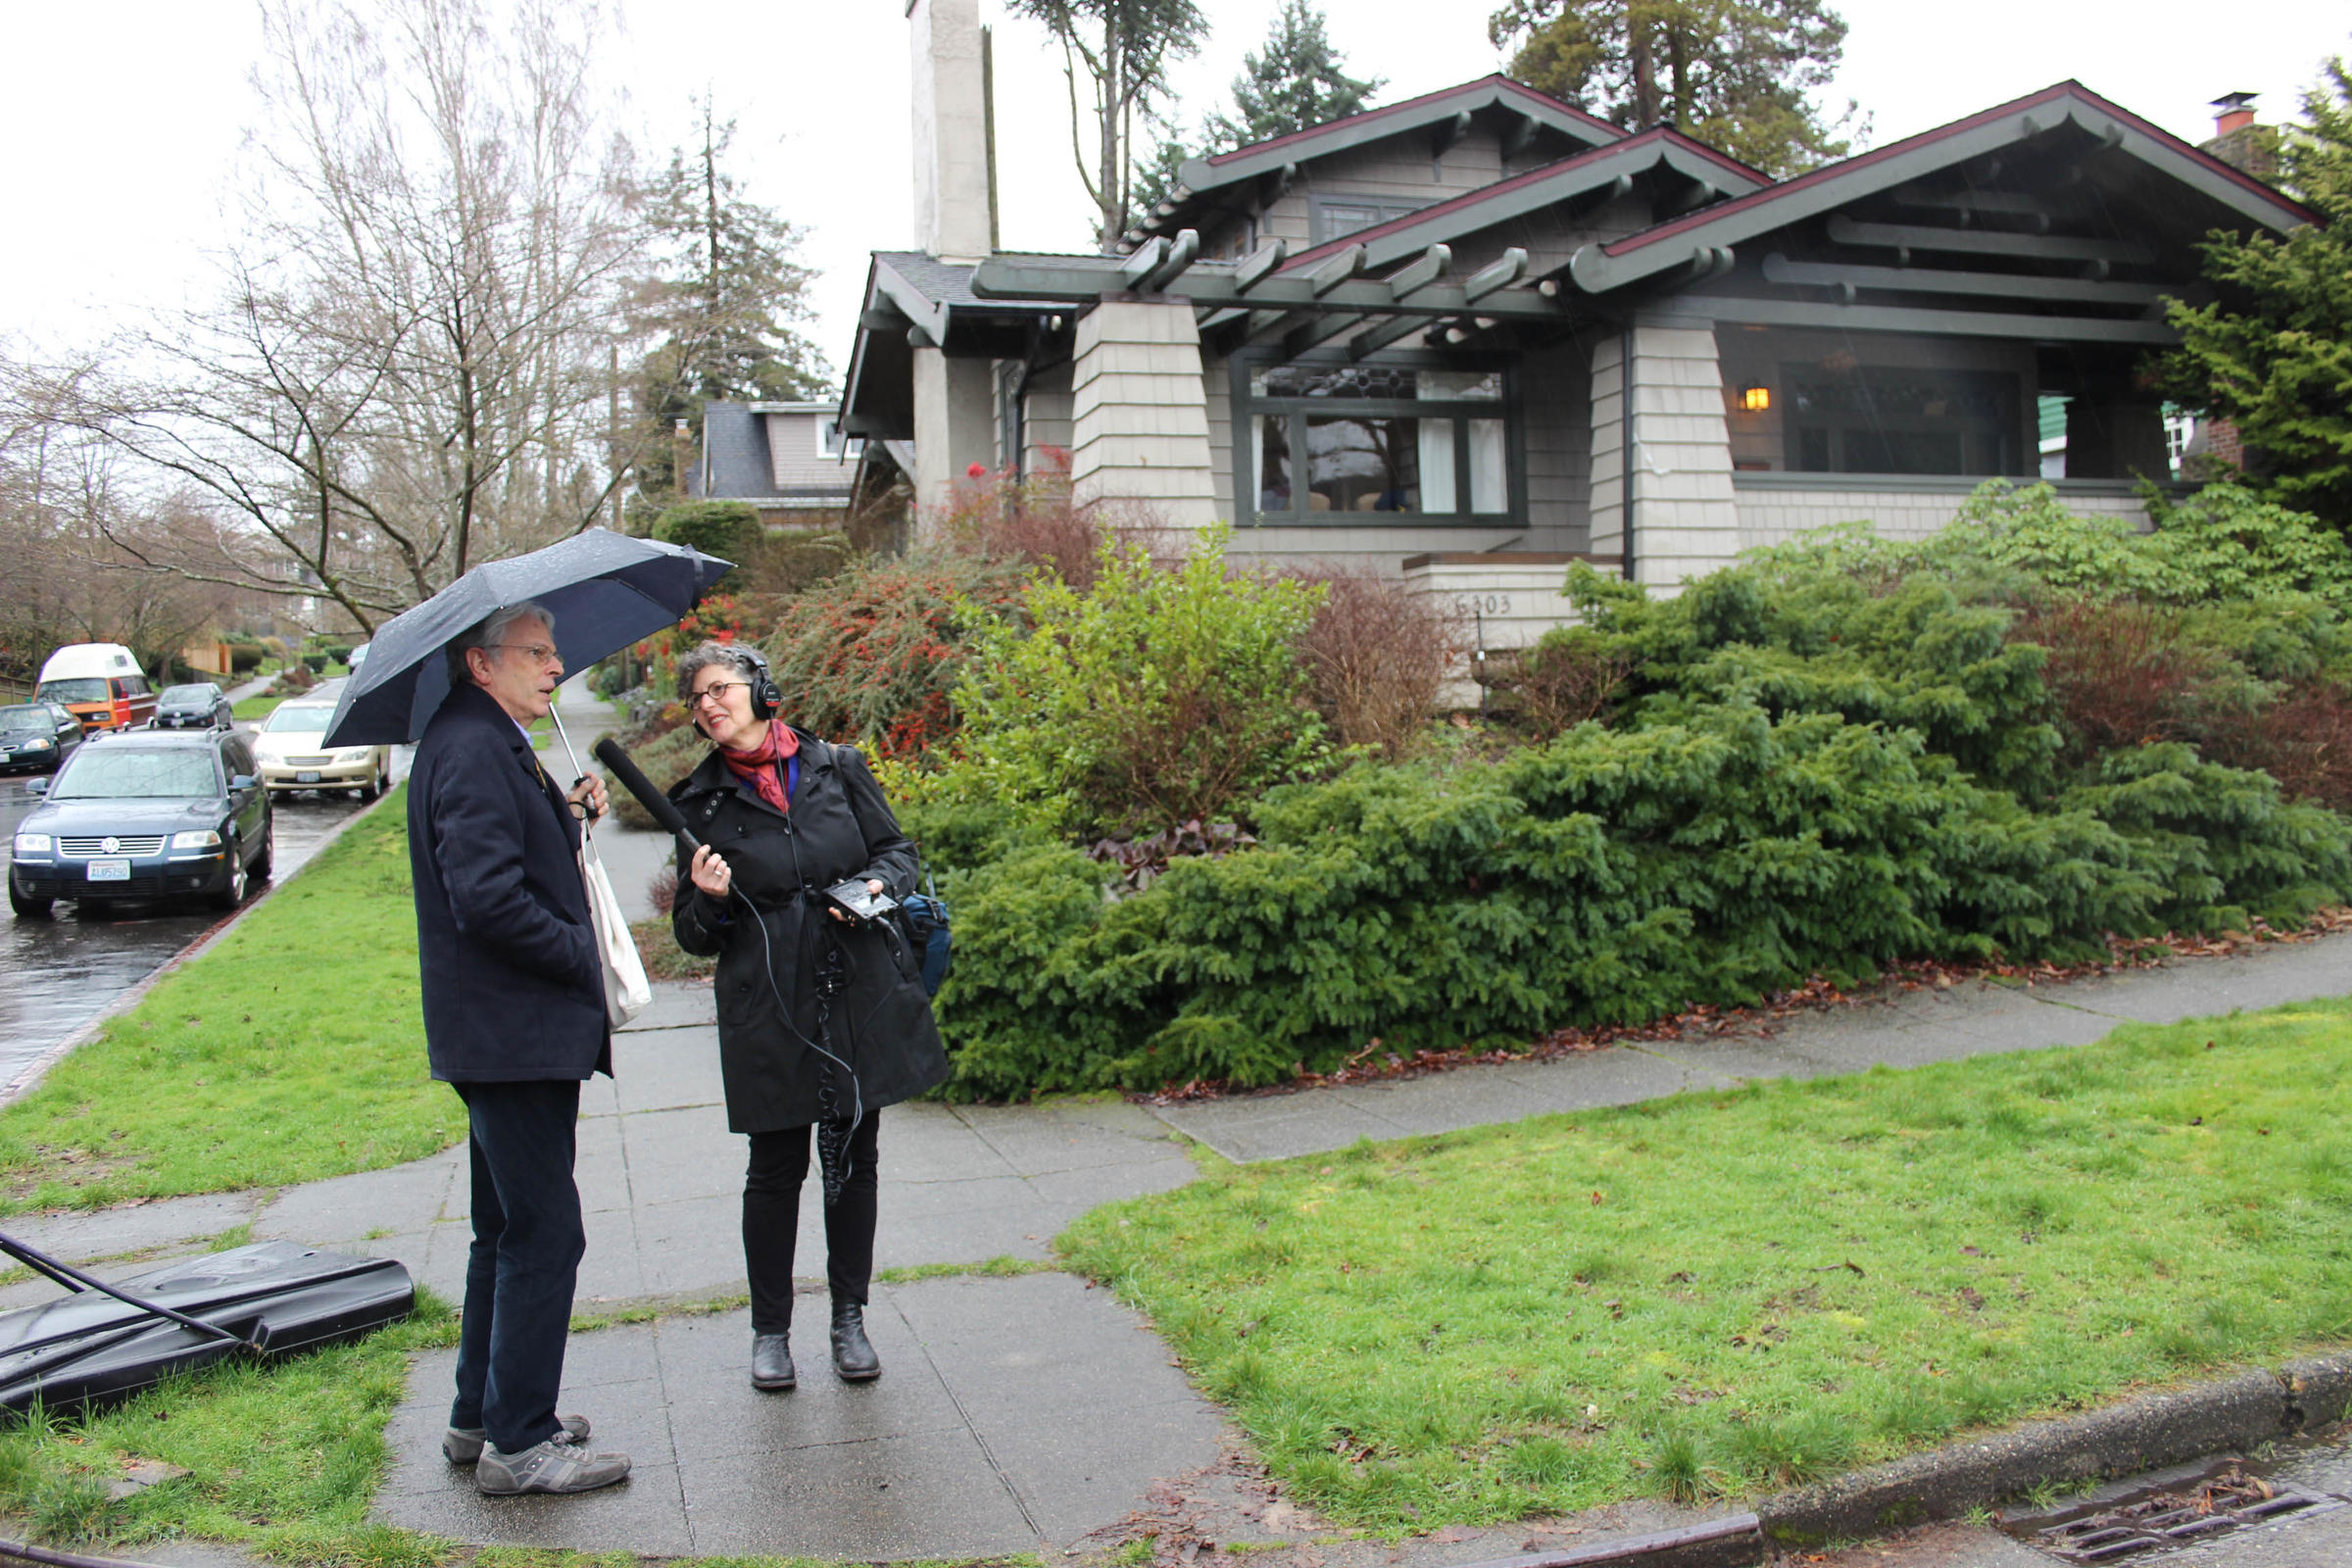 the story behind seattle s obsession with craftsman homes kuow the story behind seattle s obsession with craftsman homes